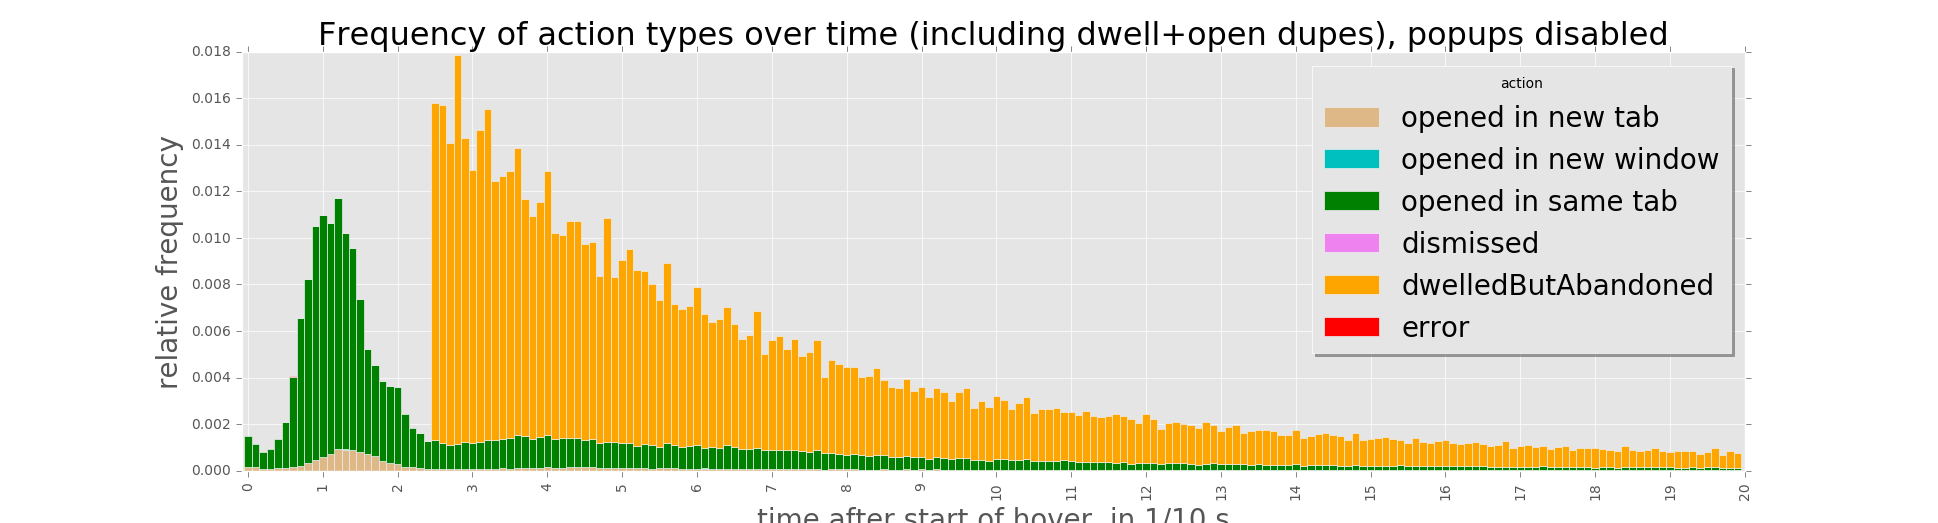 Frequency of action types over time (including dwell+open dupes), popups disabled.png (523×1 px, 87 KB)